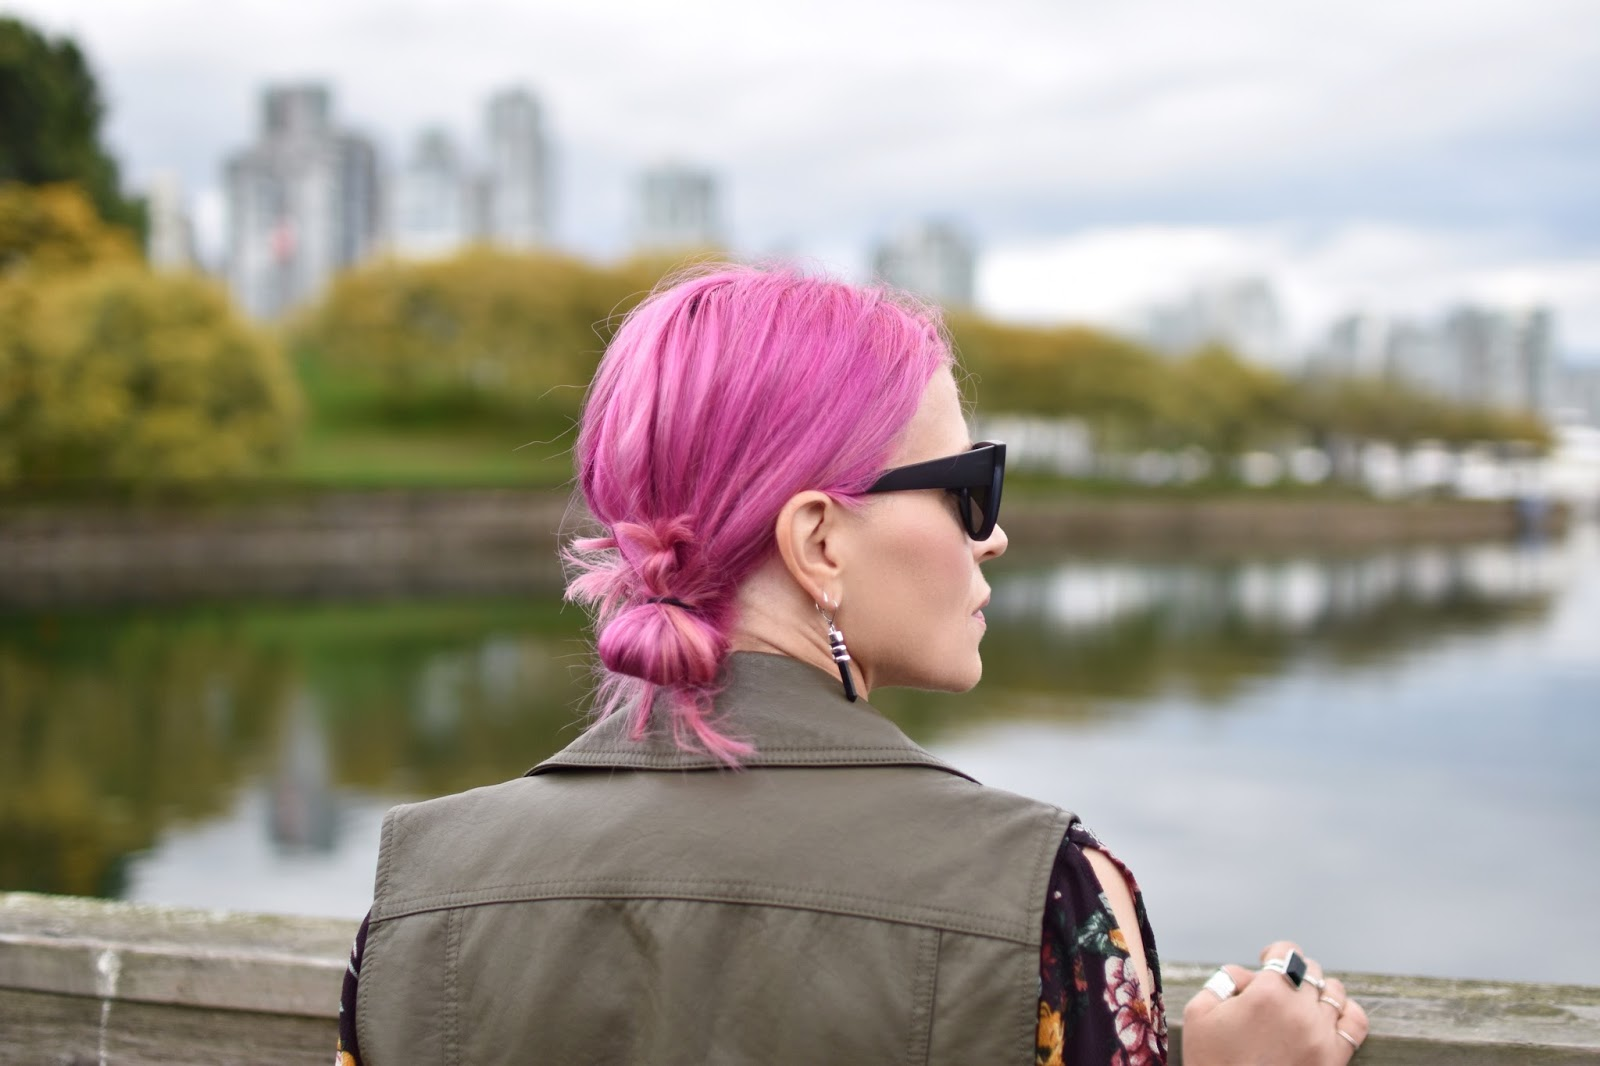 Monika Faulkner outfit inspiration - olive faux-leather moto vest, cat-eye sunglasses, fuchsia hair